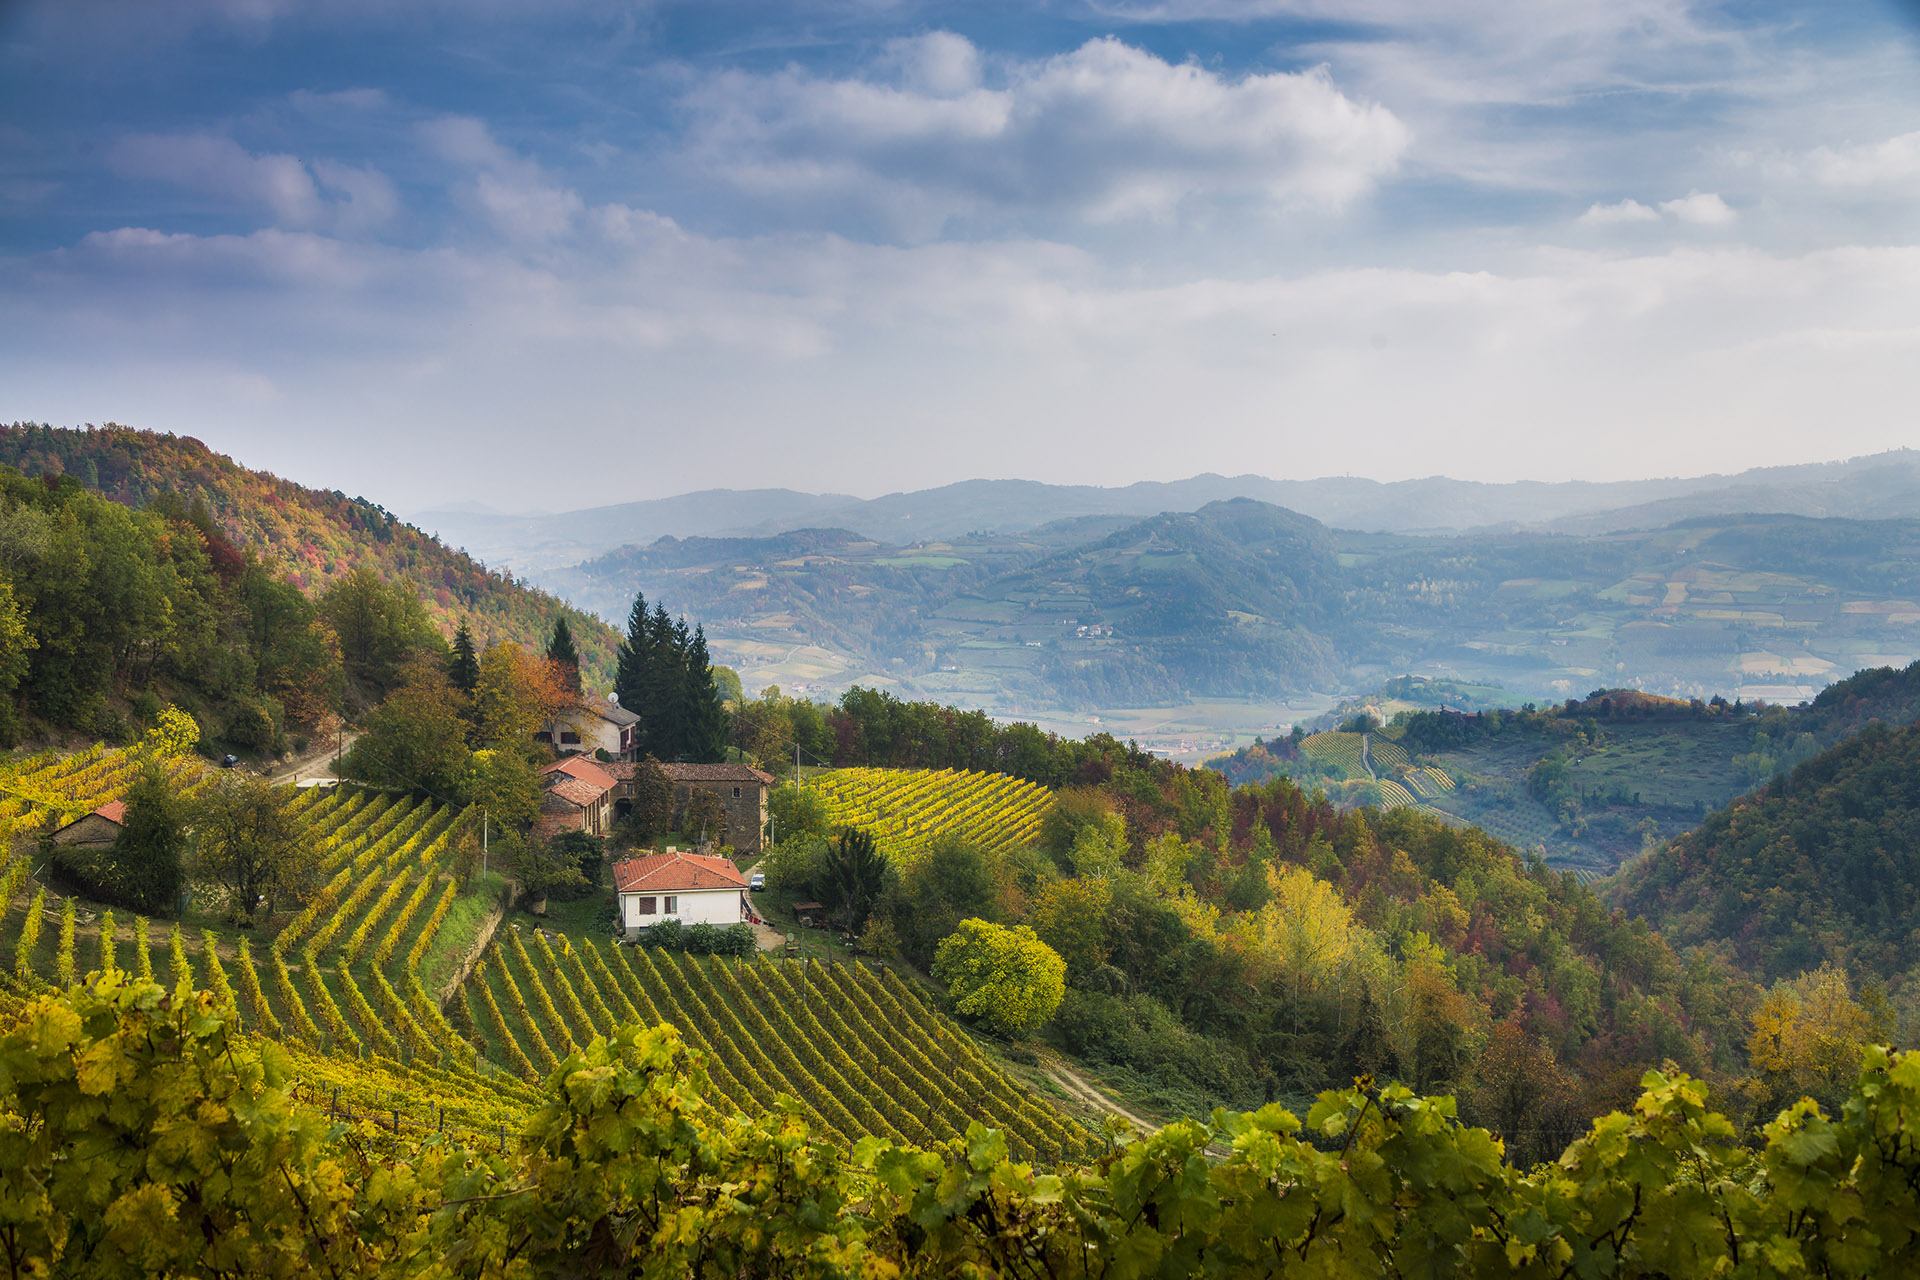 Gorgeous Italian villas on a hill with vineyards